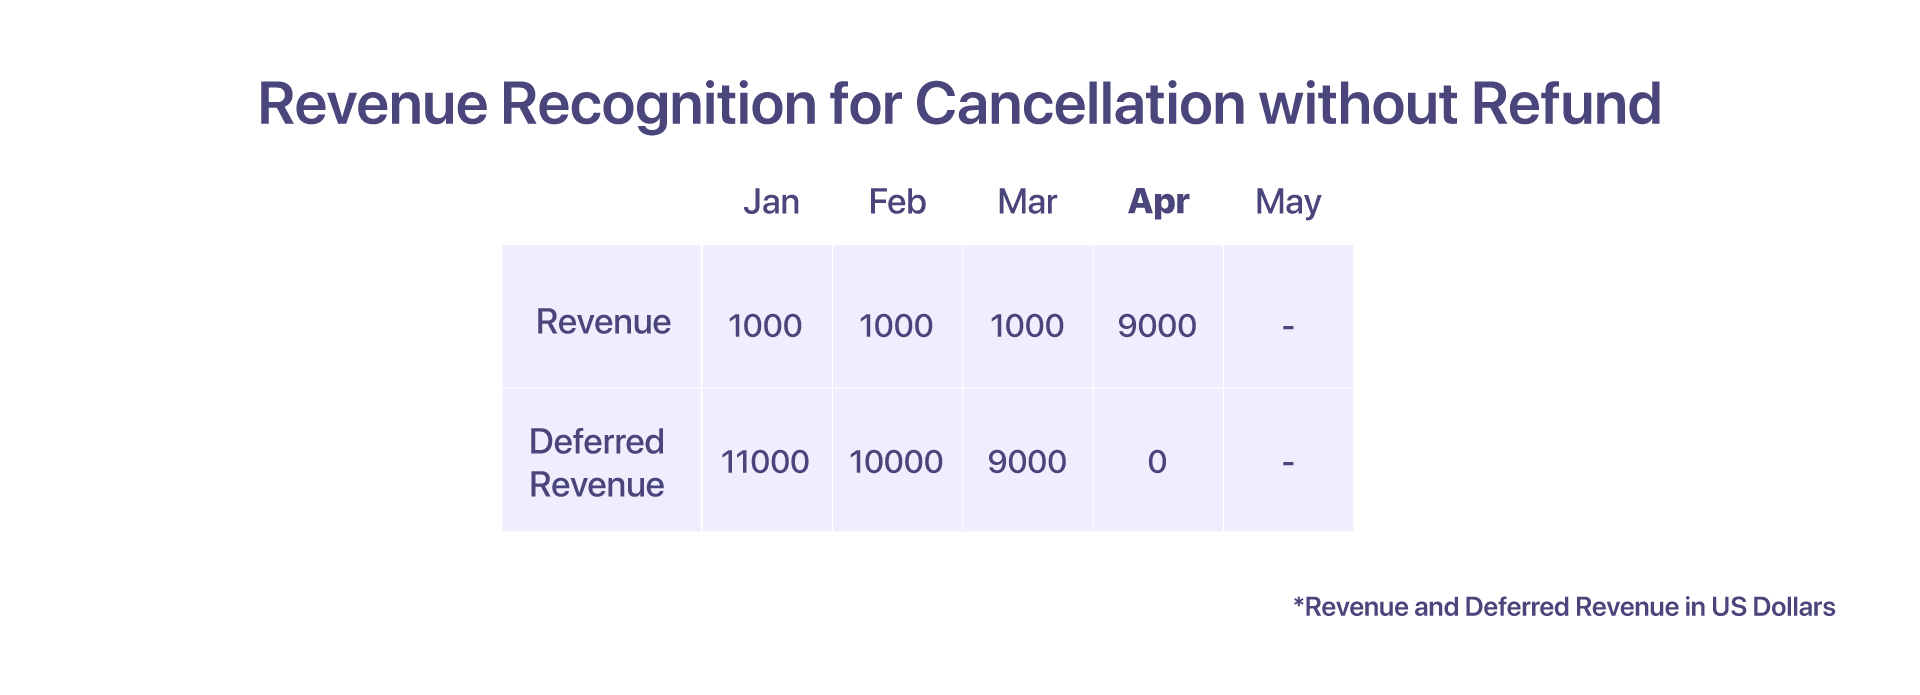 revenue recognition for cancellation without refund